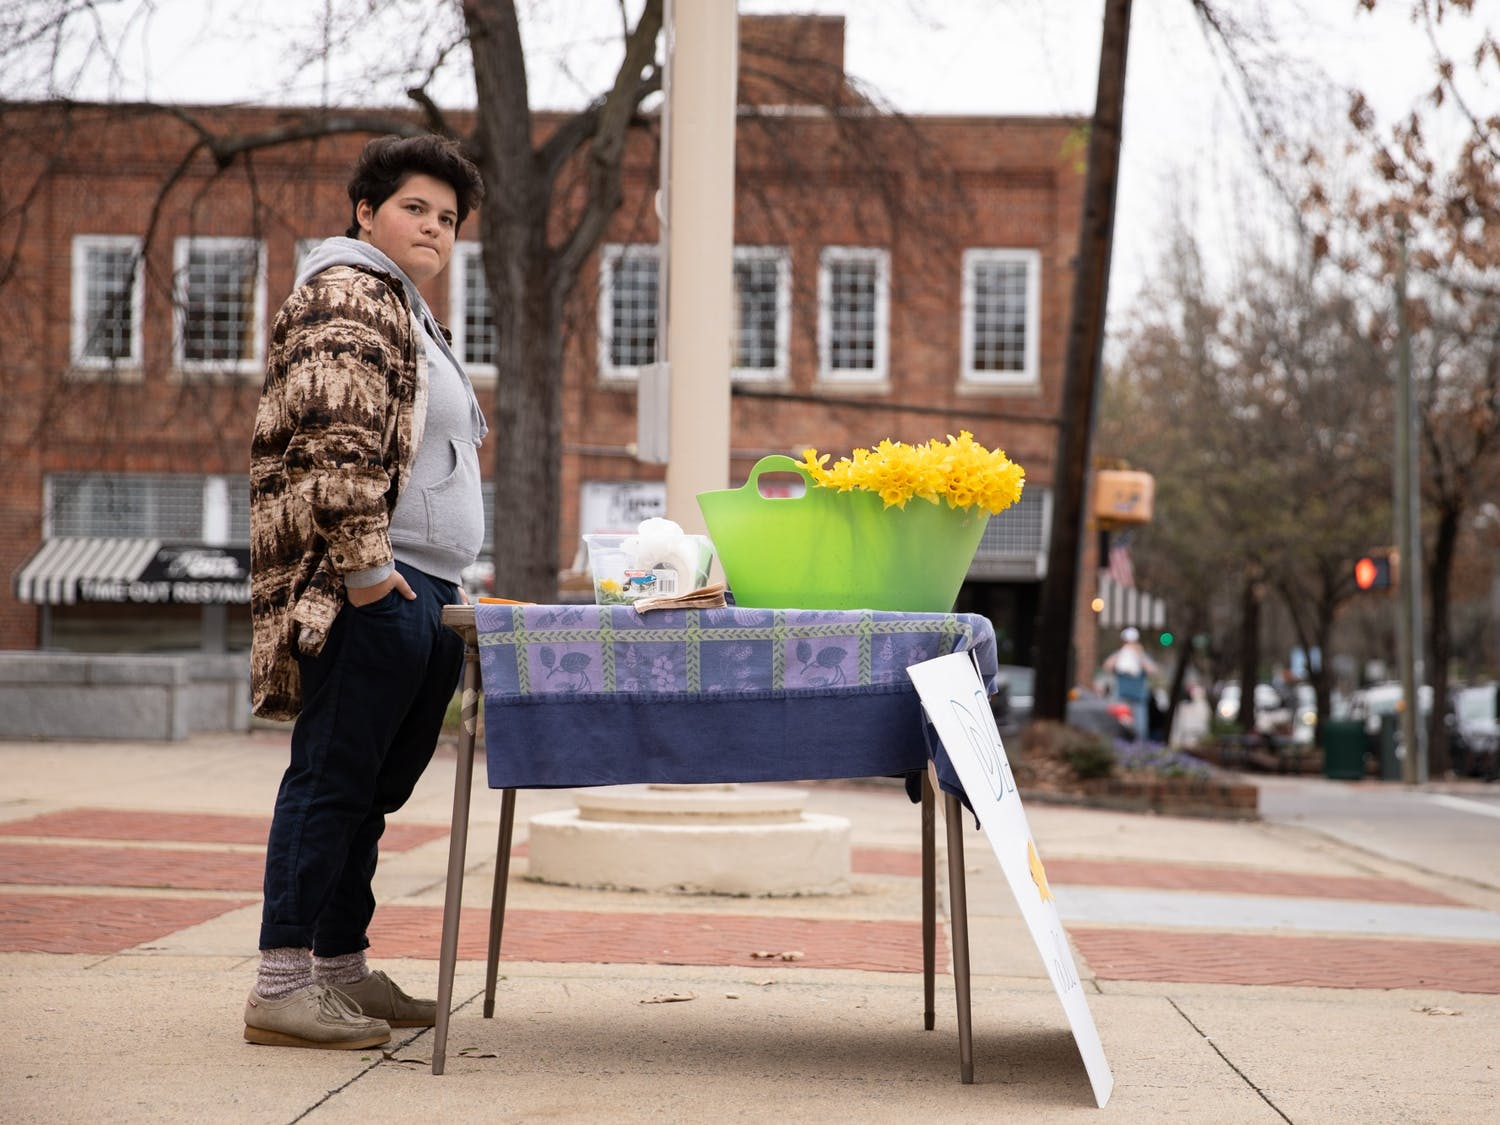 """Rebecca Mills, 18, of Chapel Hill, waits to sell a daffodil at the Peace and Justice Plaza on Sunday, Feb. 16, 2020. Mills has sold flowers from her backyard to benefit charity for 14 years. """"I feel like it's very important to help people with what you have. I have the opportunity to be able to cut all of these flowers in my backyard,"""" she said. """"I feel like it would be silly to not use that opportunity."""""""